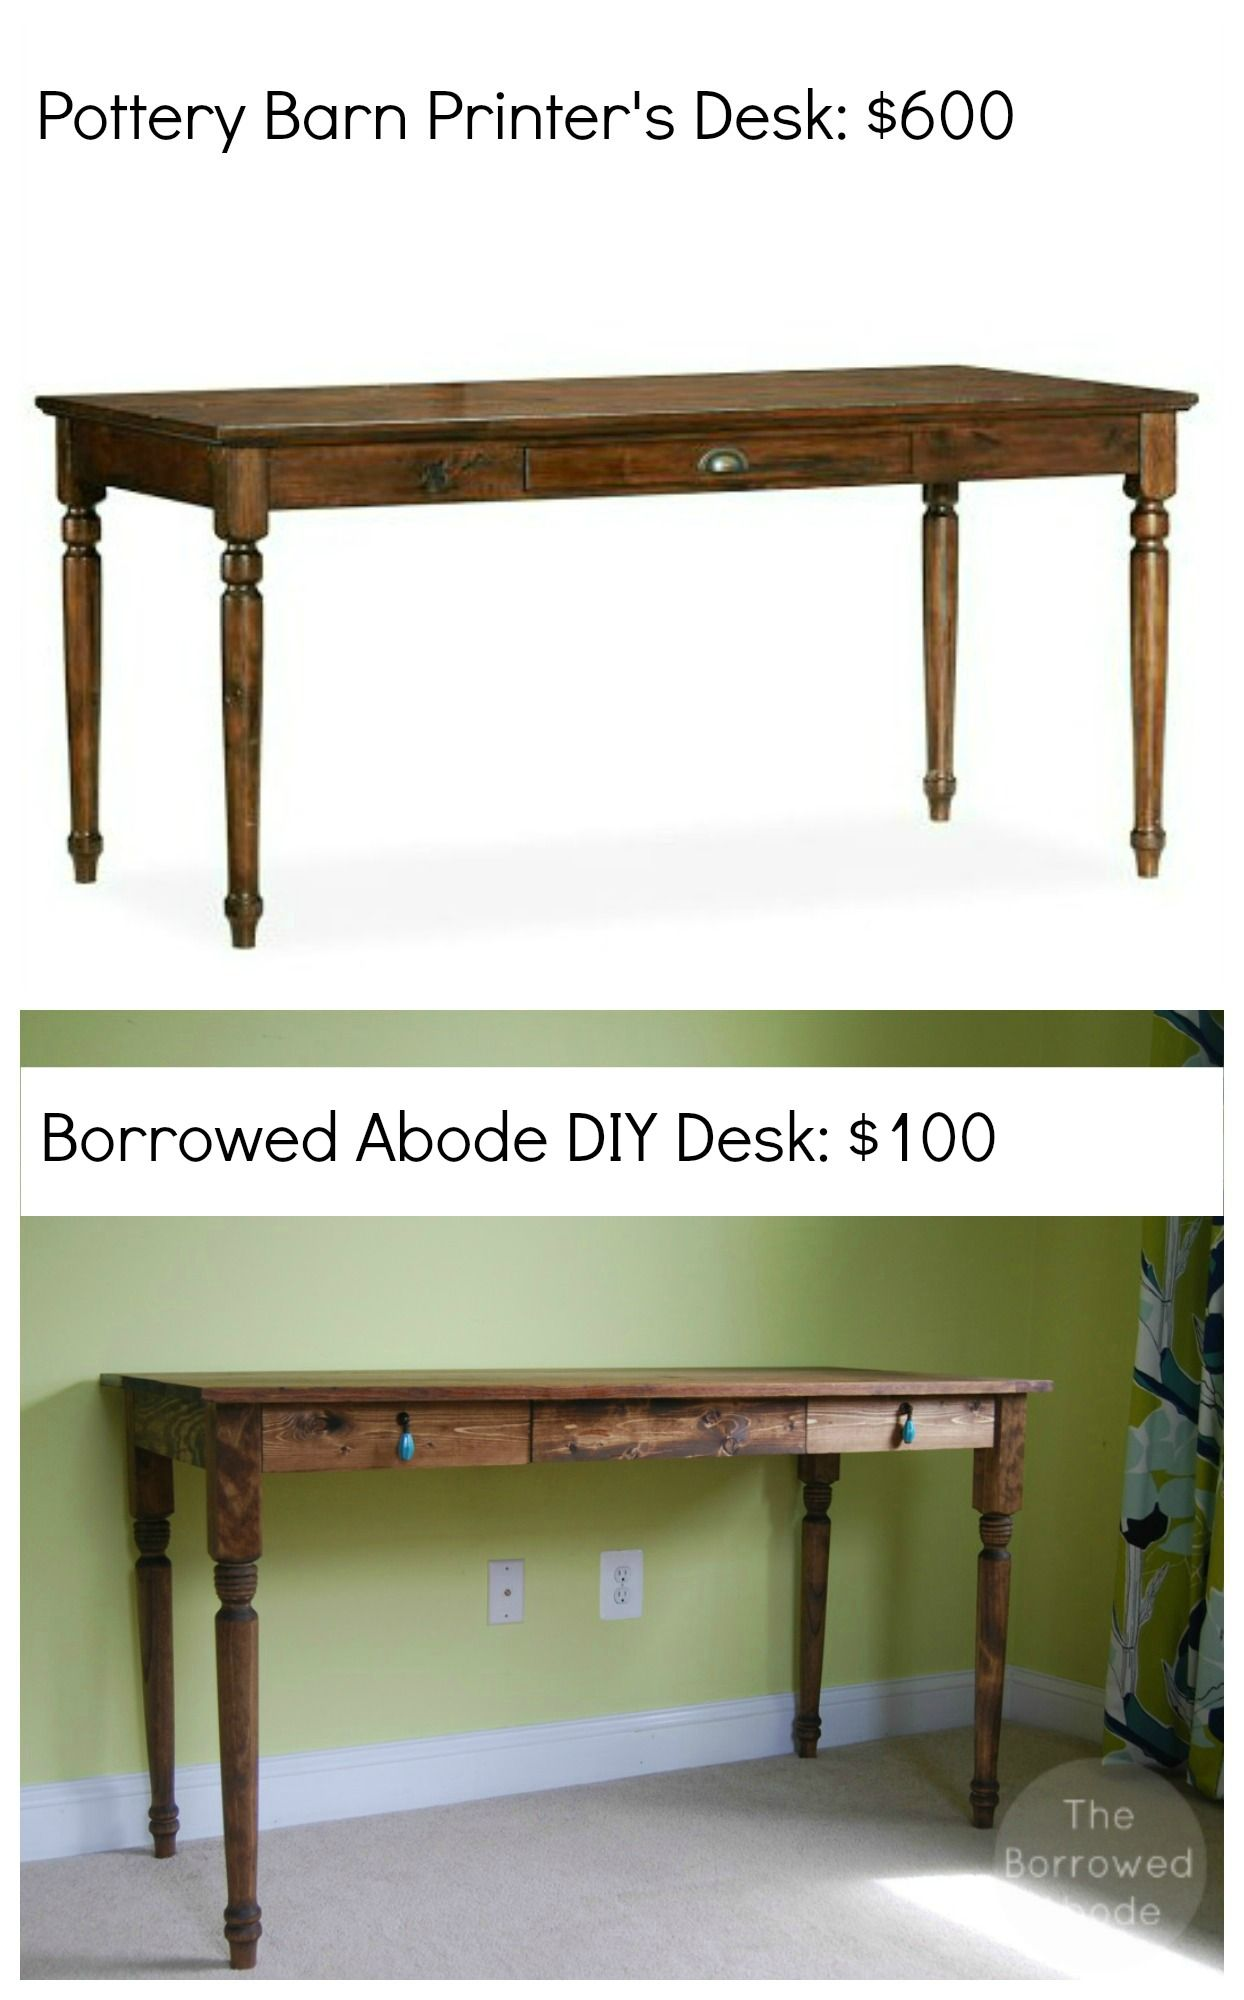 Diy Pottery Barn Desk The Borrowed Abode